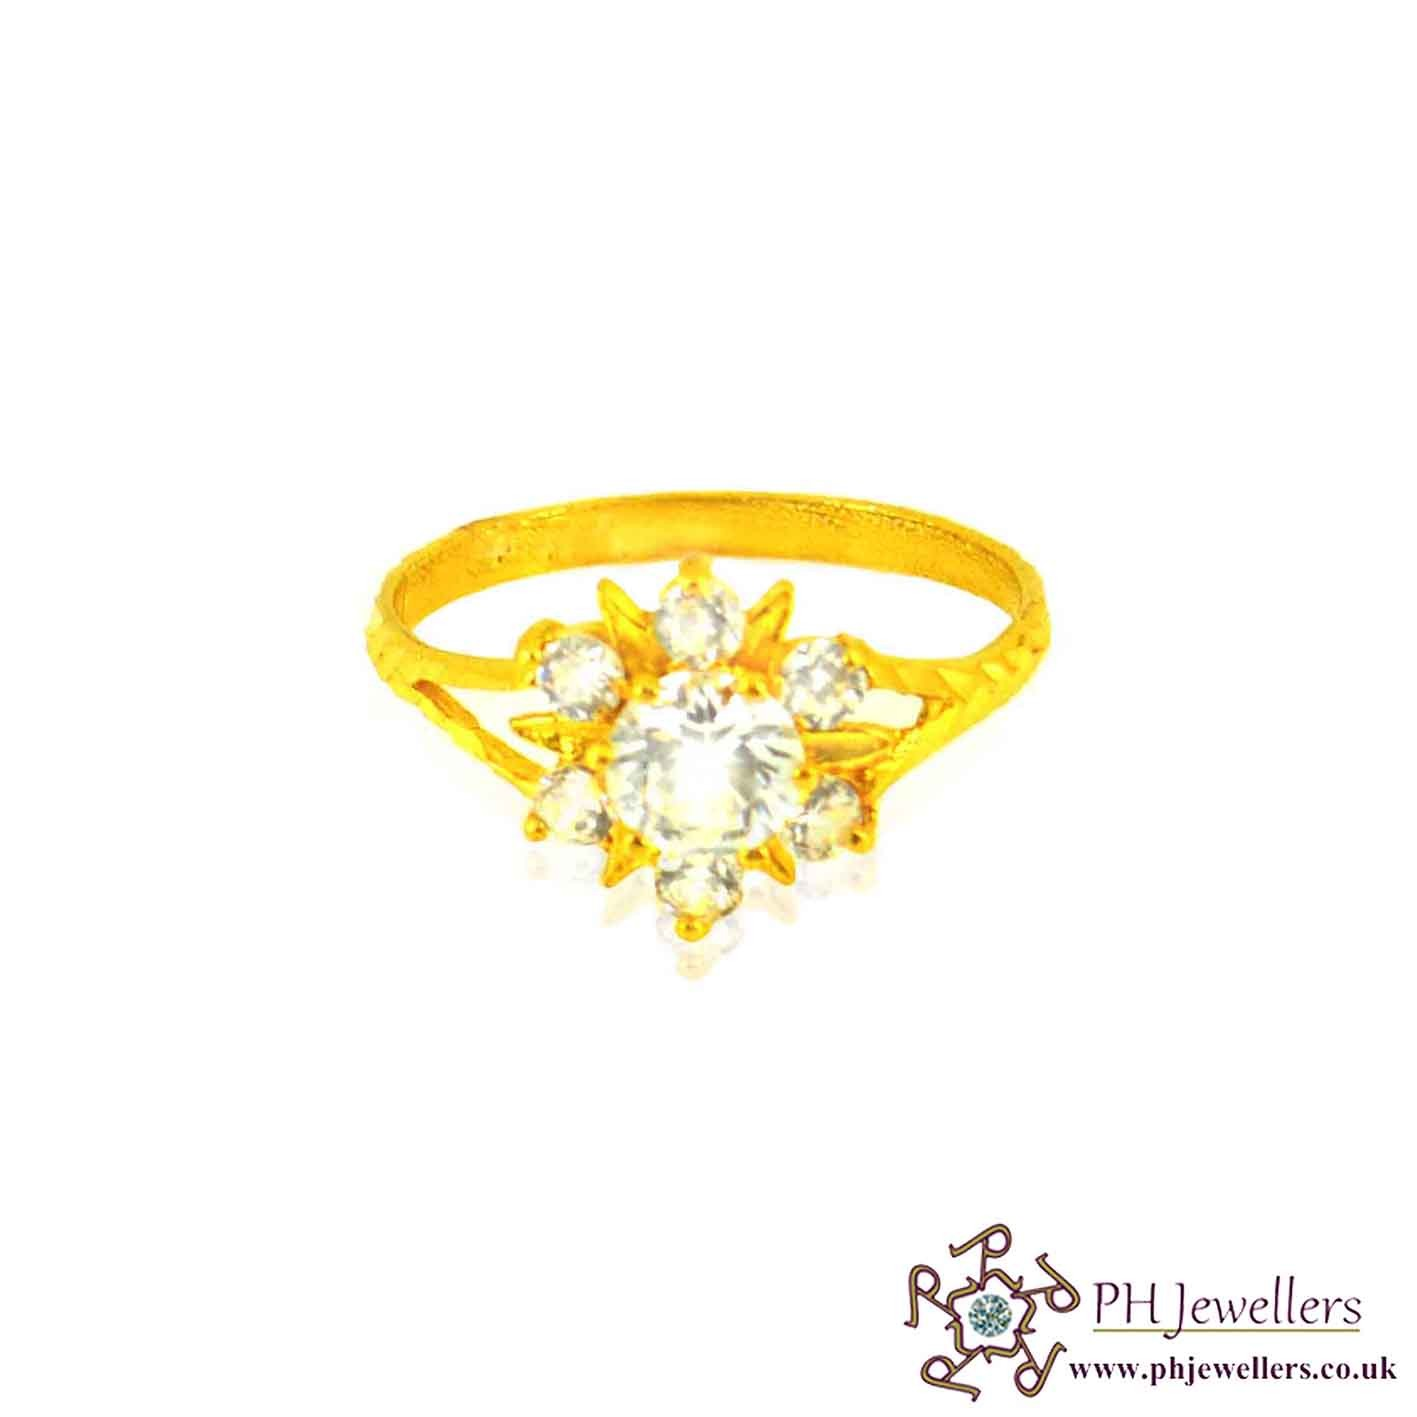 22ct 916 Hallmark Yellow Gold Flower Round Size O,O1/2 Ring CZ SR23